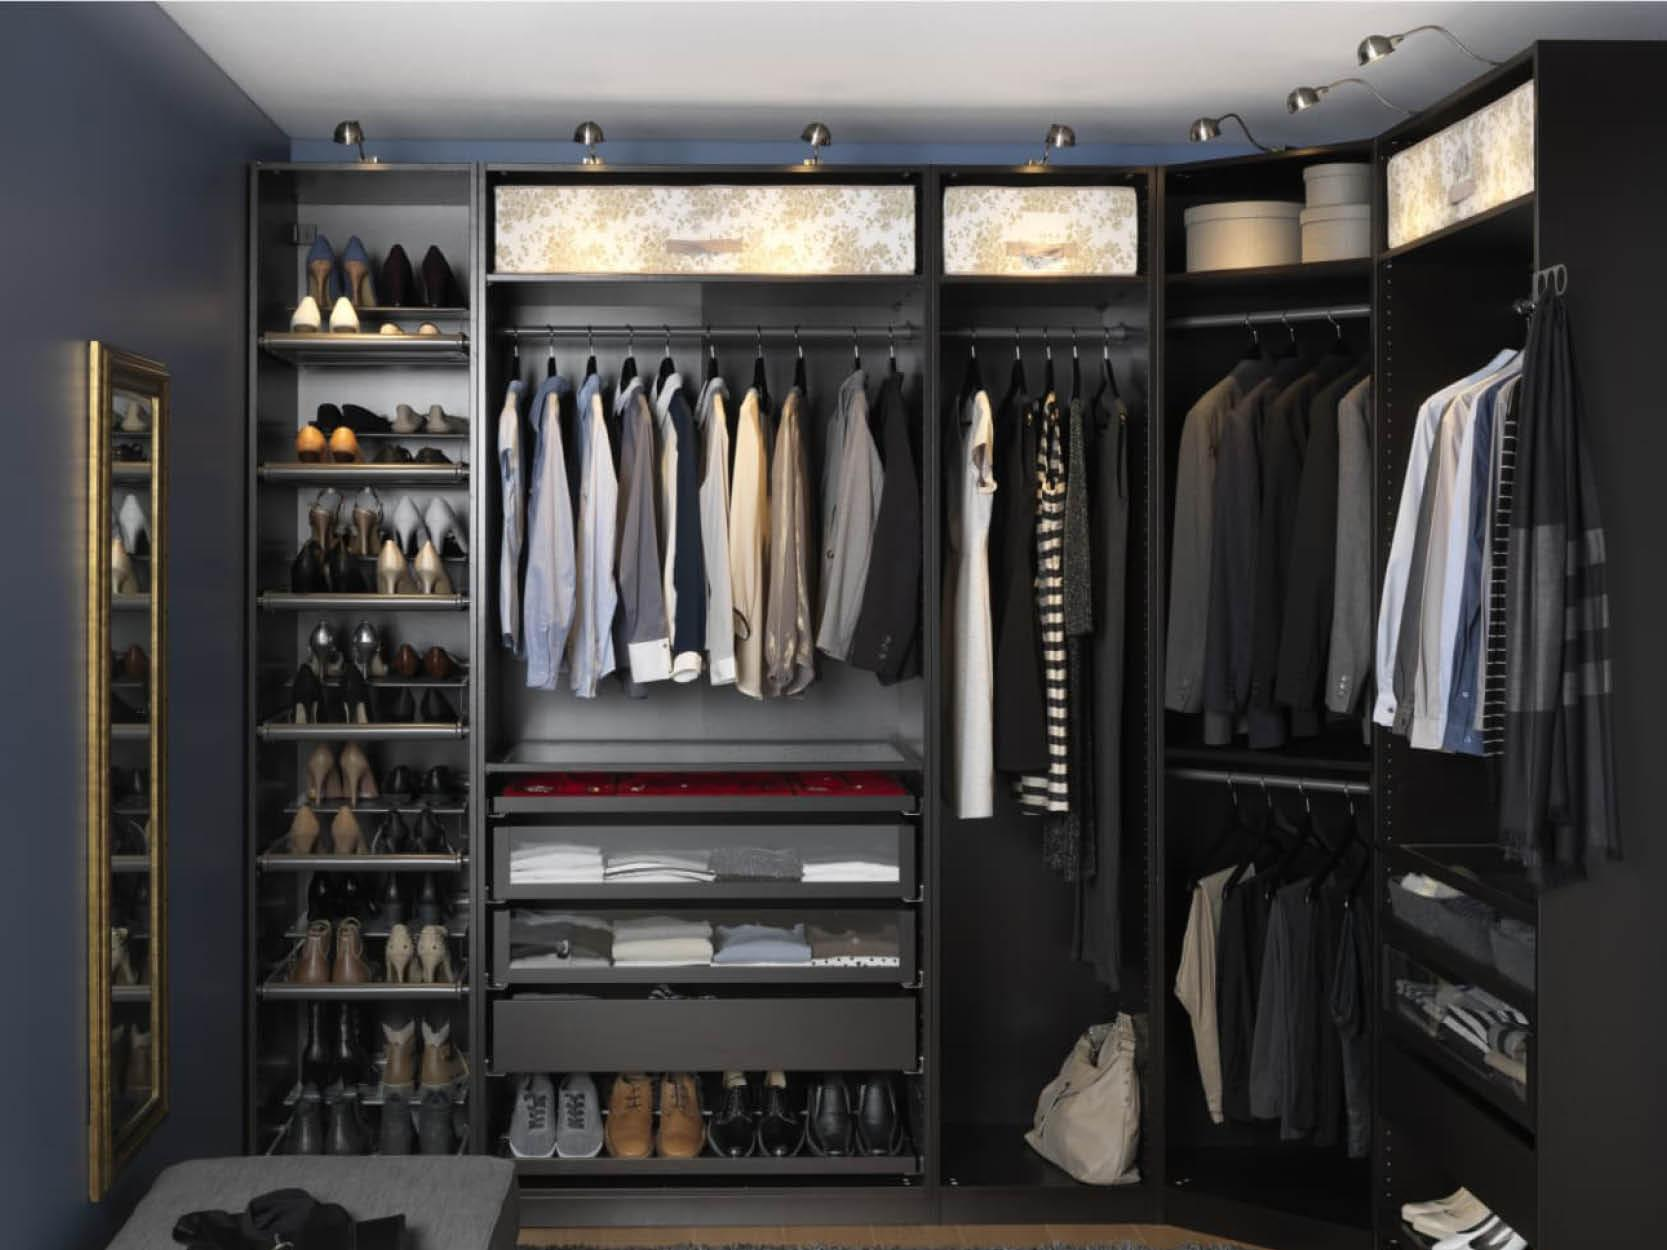 Walk in wardrobes are definitely a way to add some interest, let the clothes speak for themselves by giving them a dark base to pop off of like this classic IKEA option.